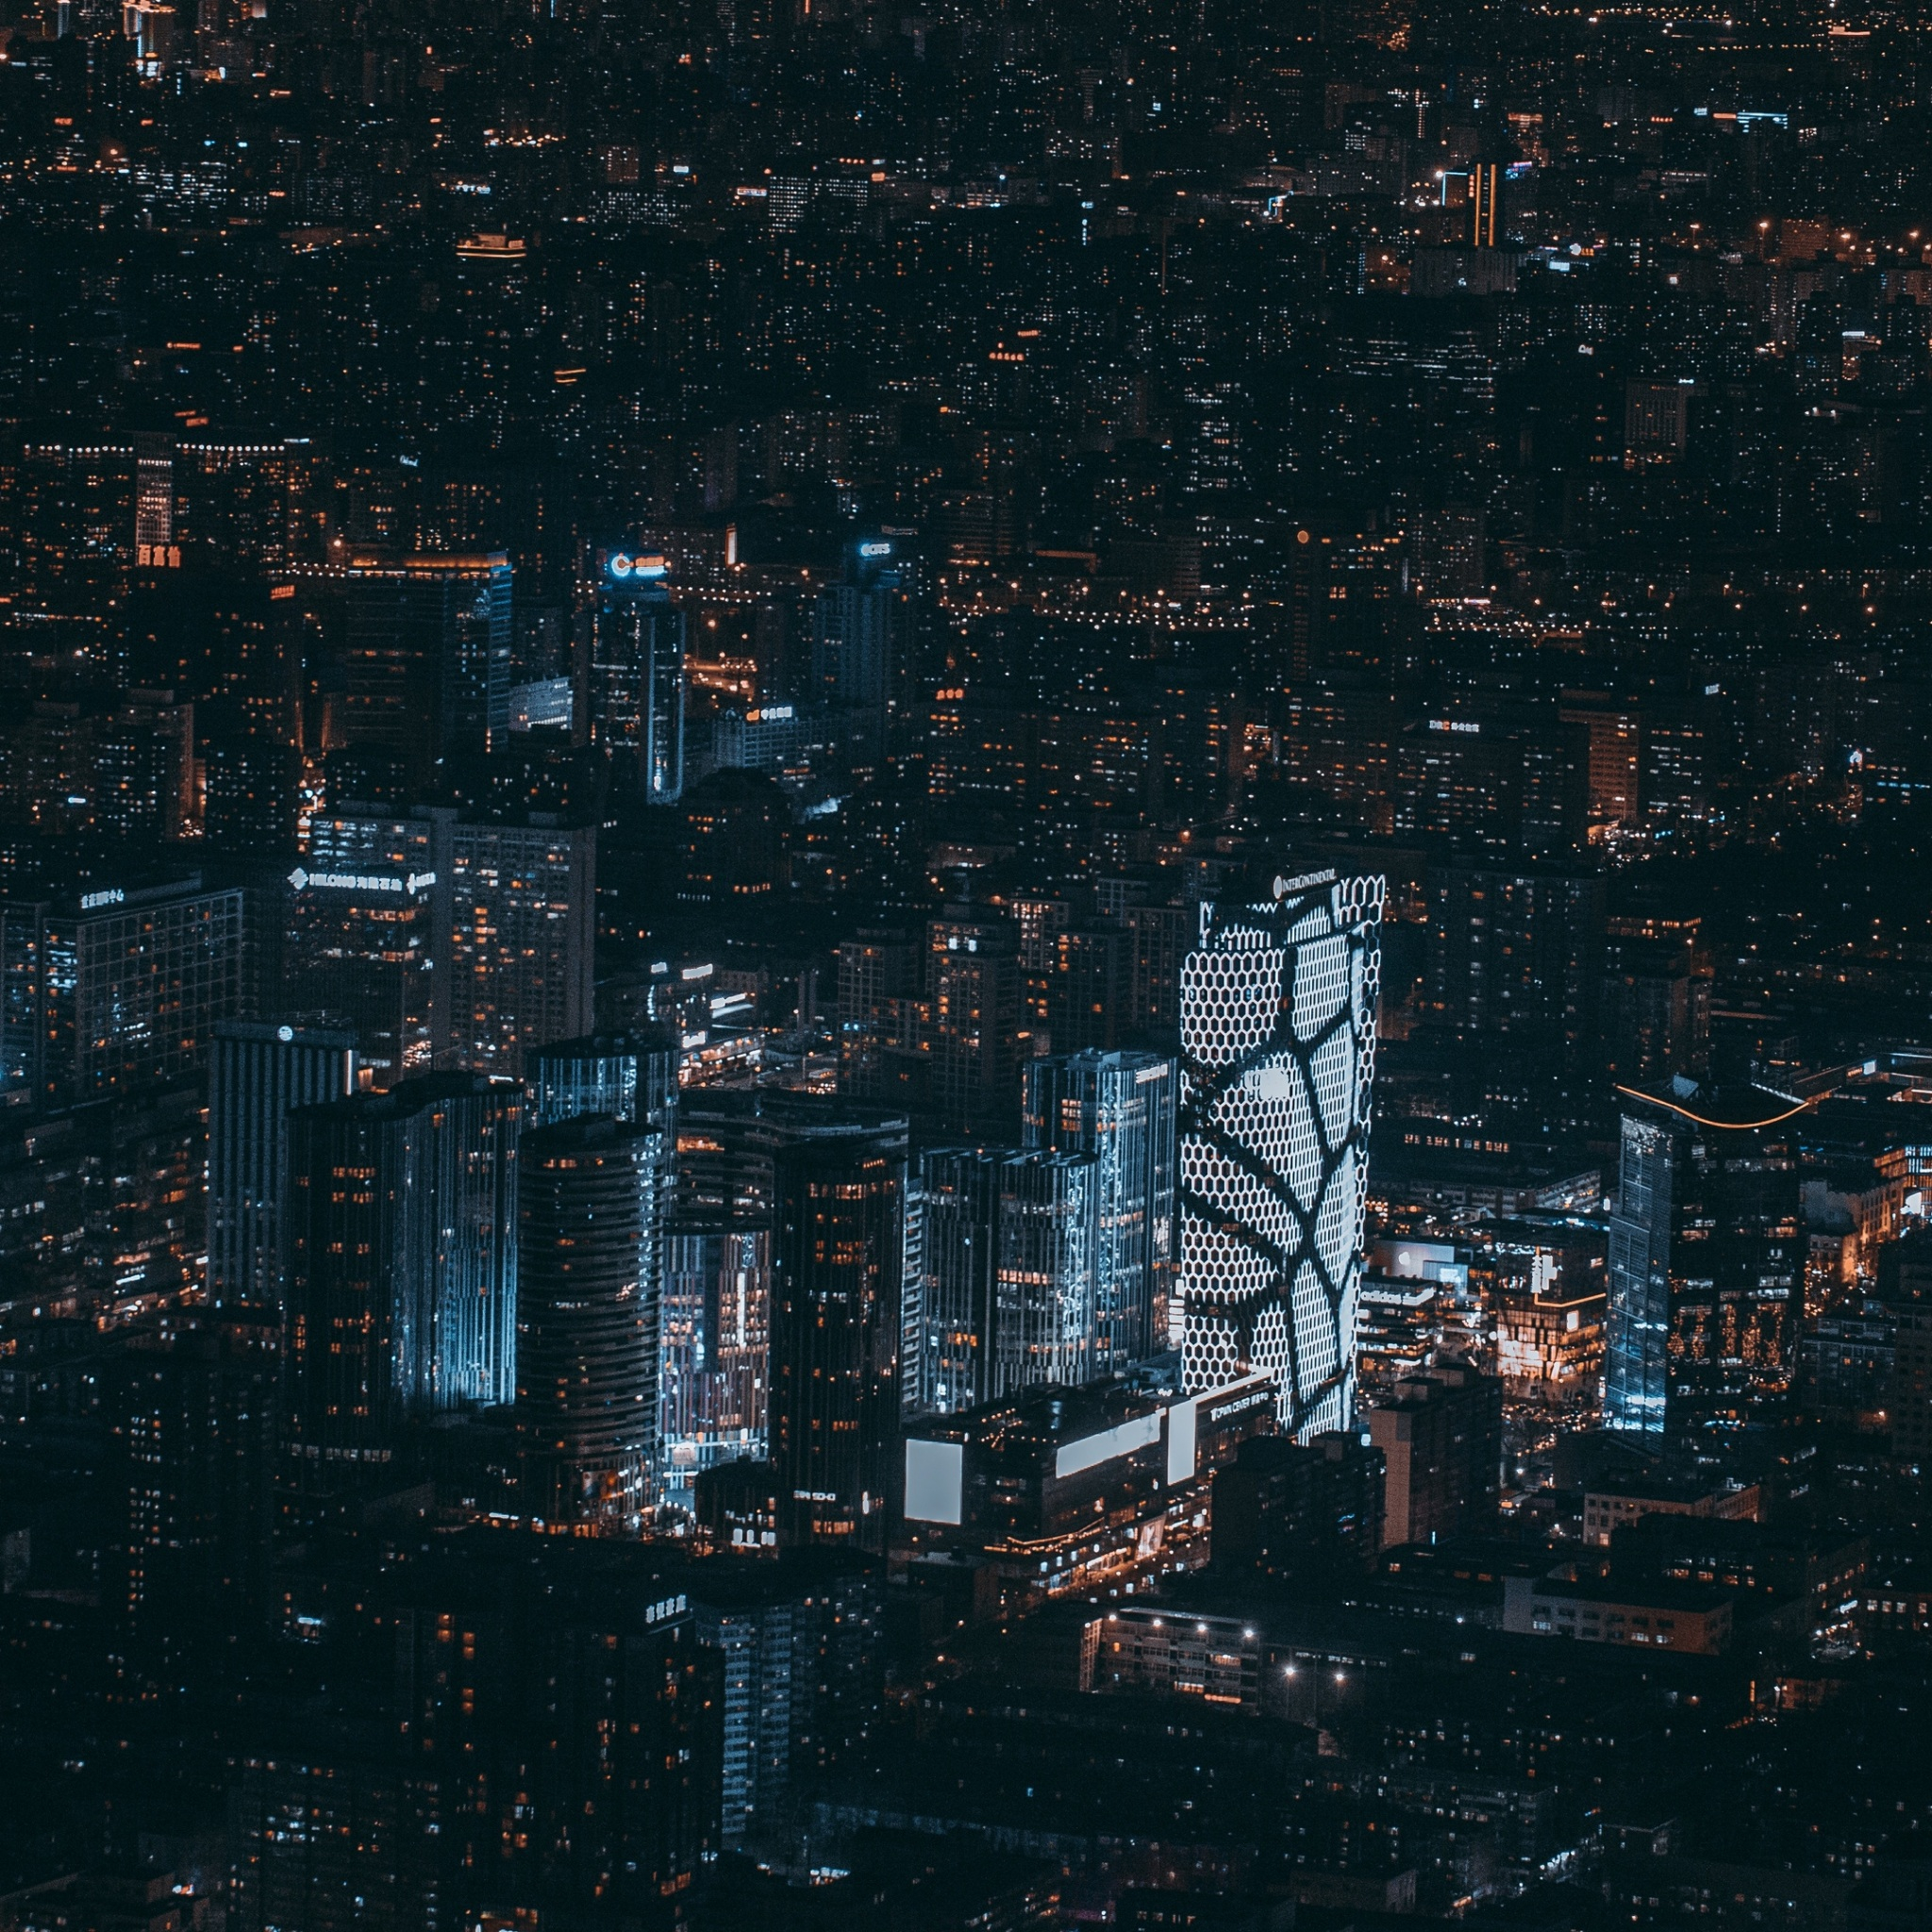 beijing china night city view from above skyscrapers 4k